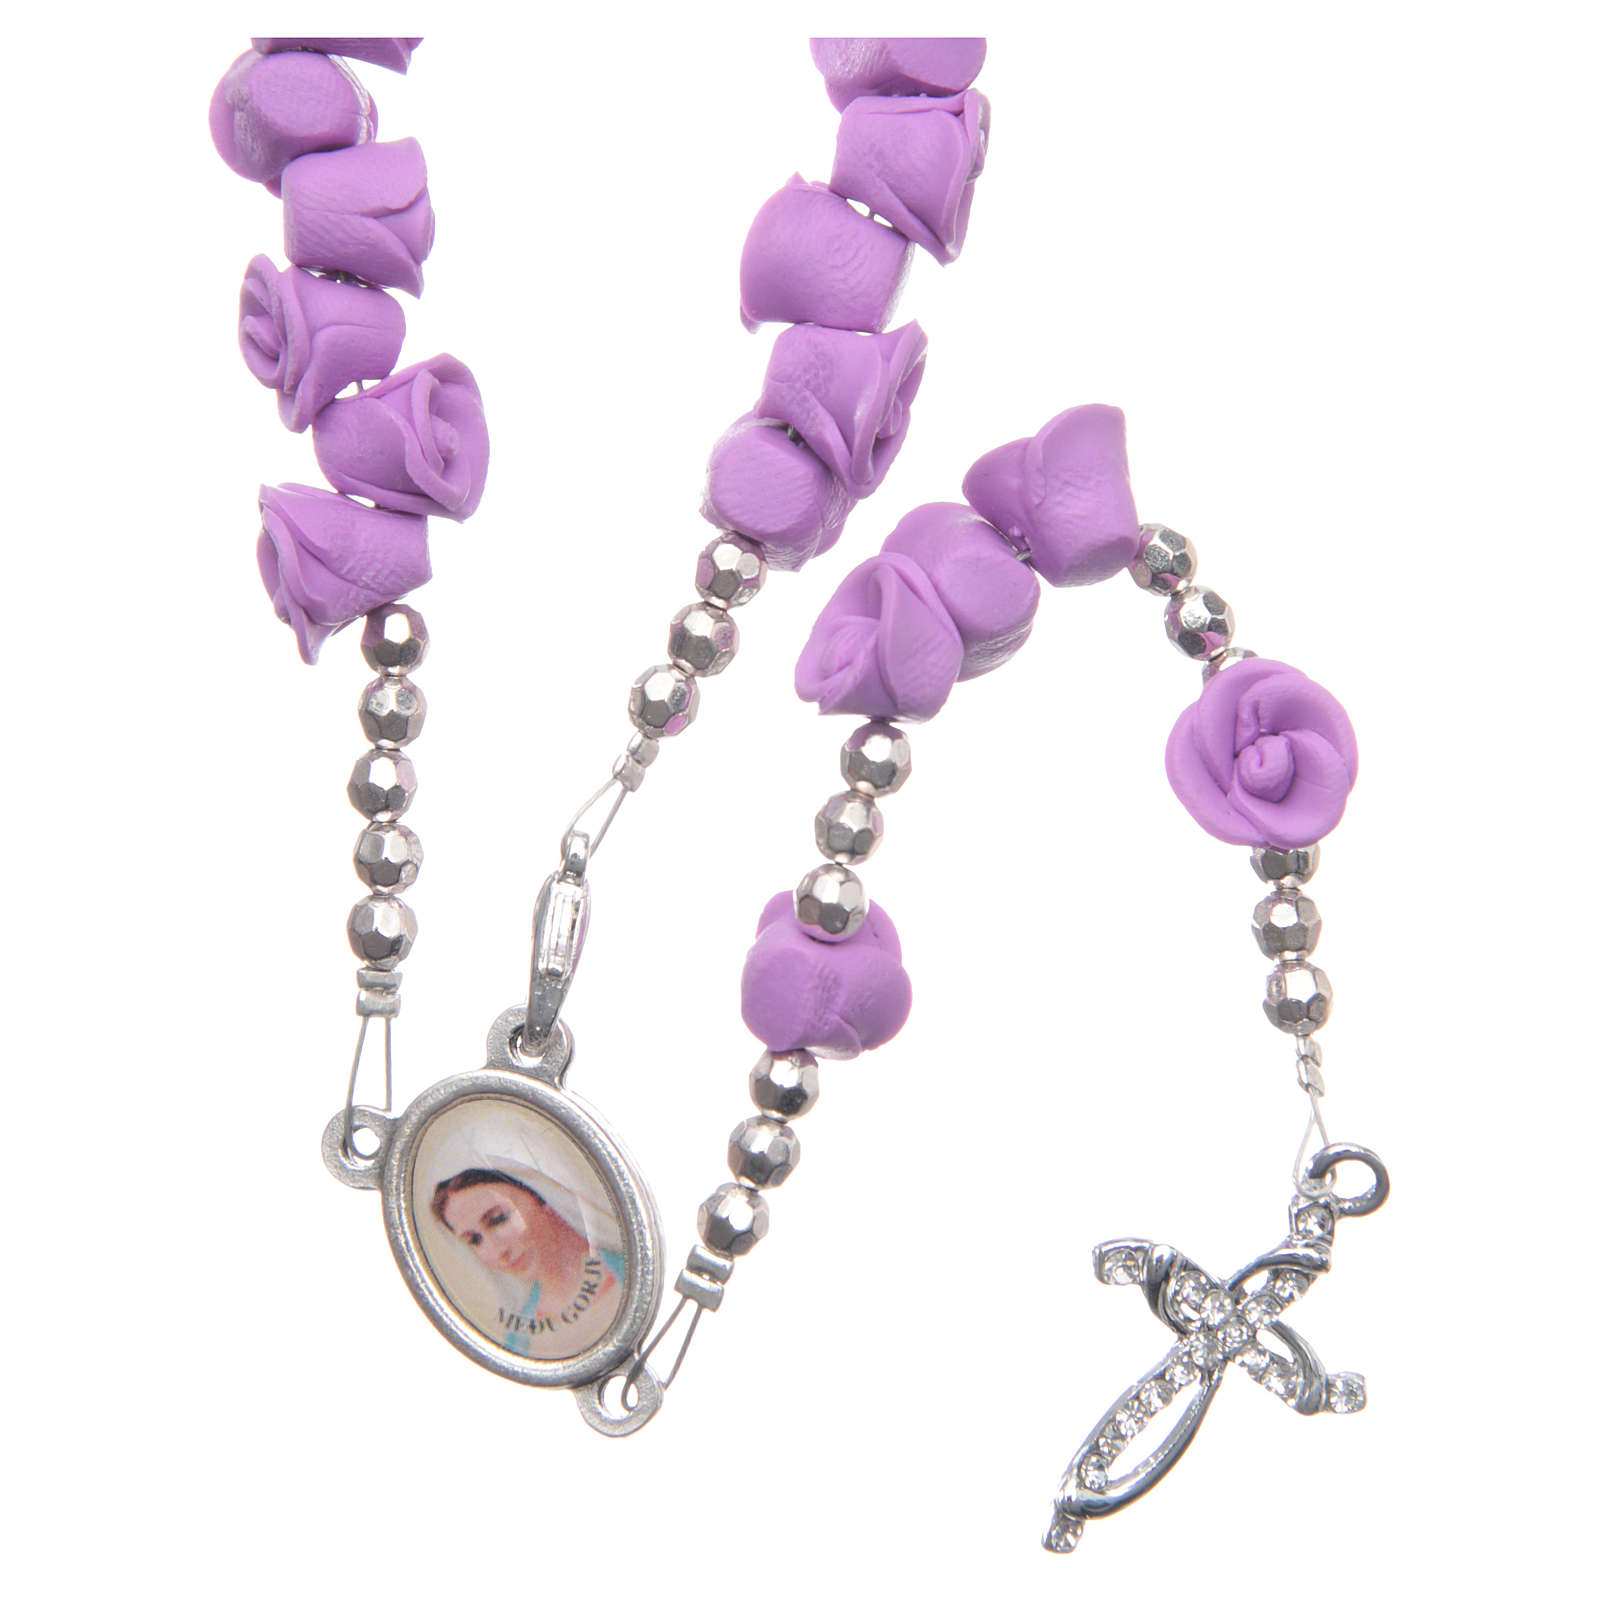 Medjugorje rosary beads with lilac roses with cross in rhinestones 4